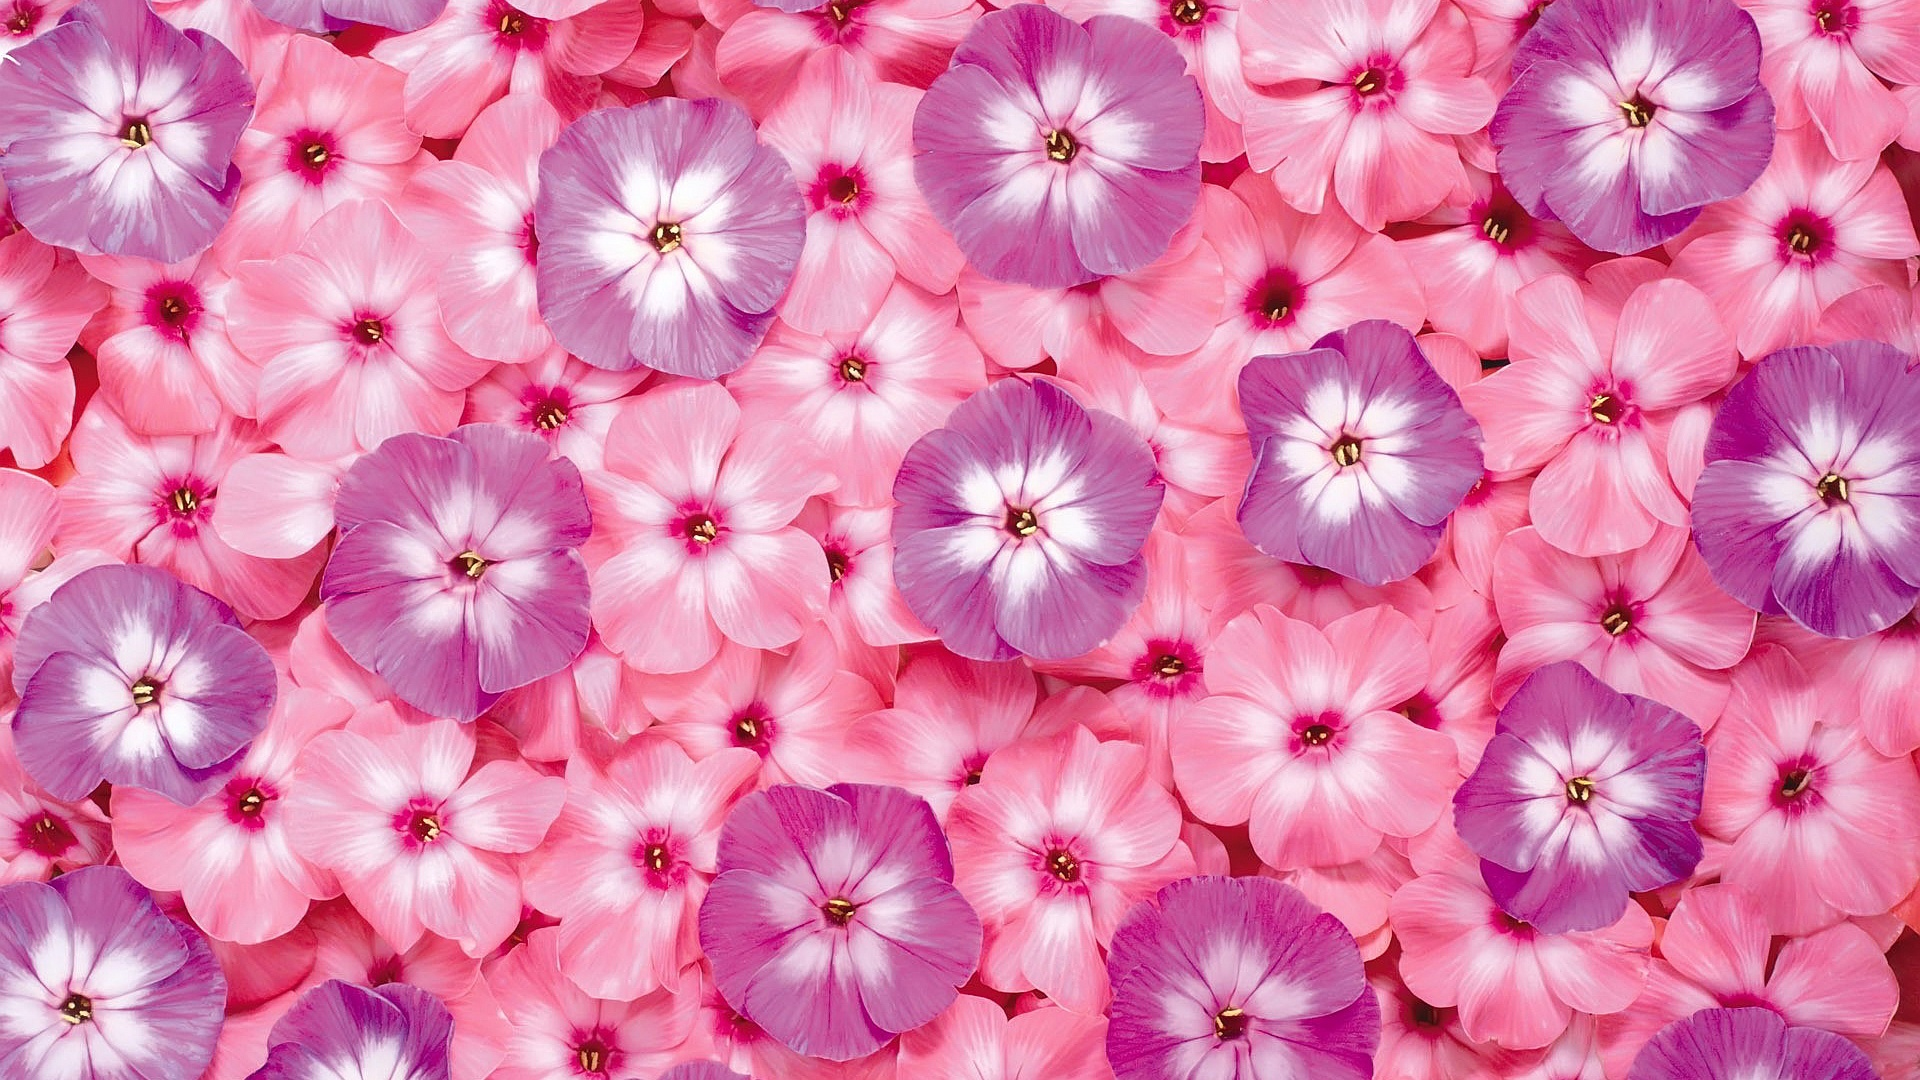 Cantik Bunga Widescreen 3 01 Wallpaper Pink Flower Desktop 1680x1050 Download Hd Wallpaper Wallpapertip